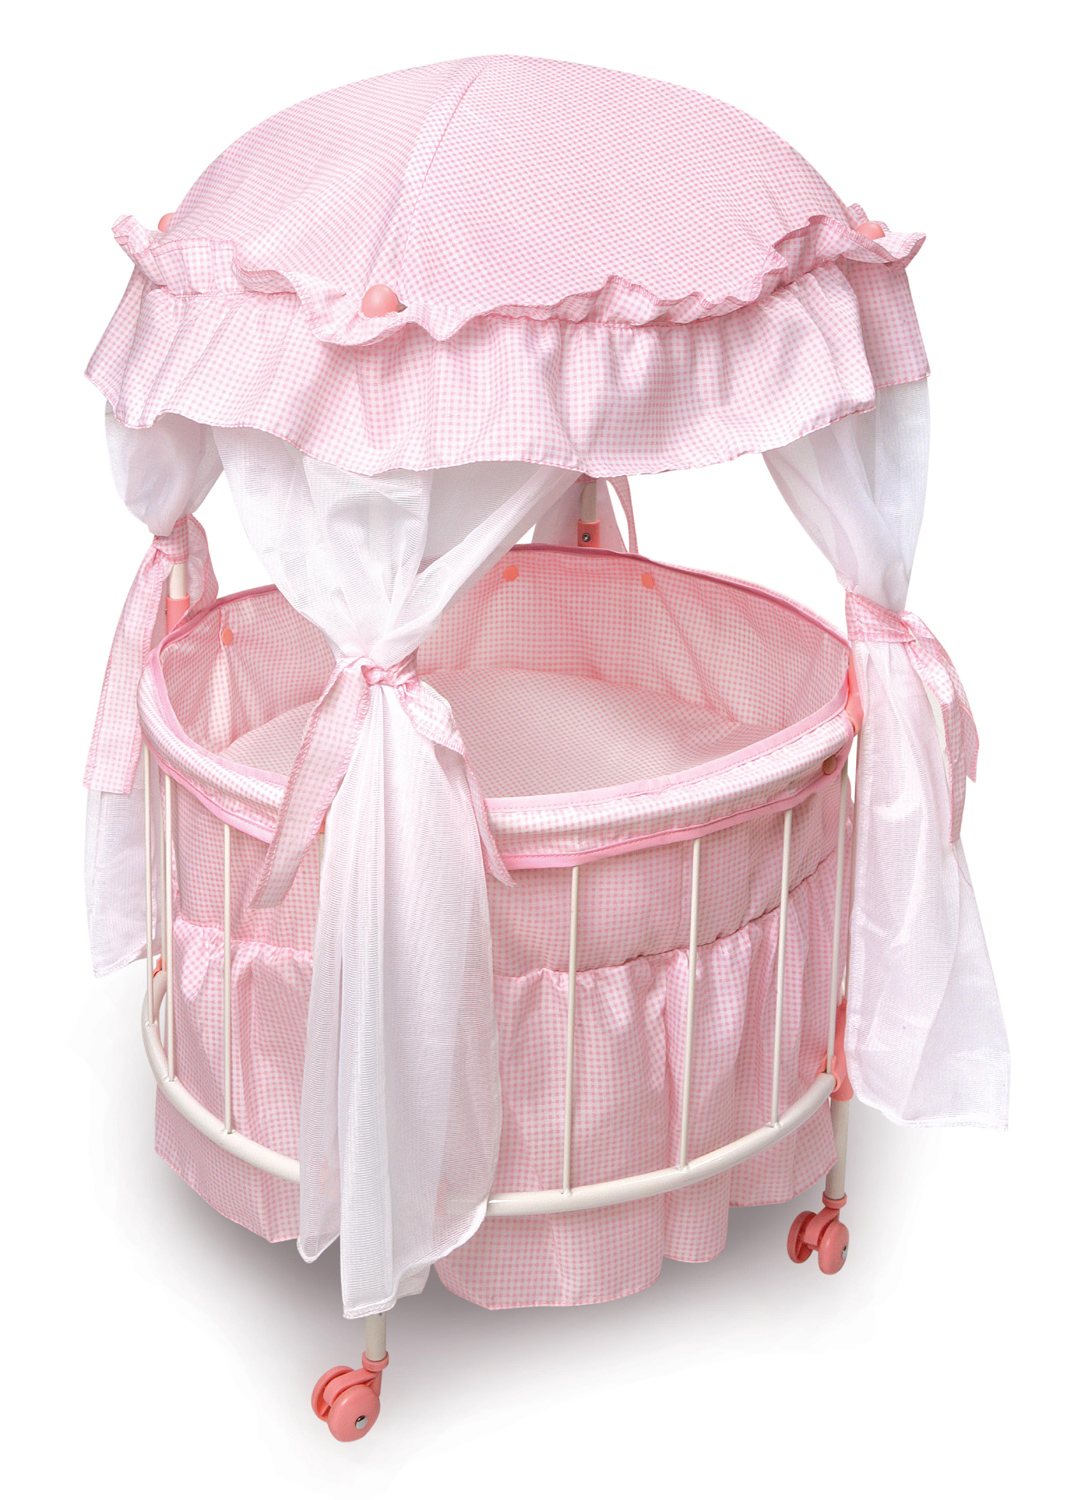 Baby Bassinet Liner Badger Basket Royal Pavilion Round Doll Crib With Canopy